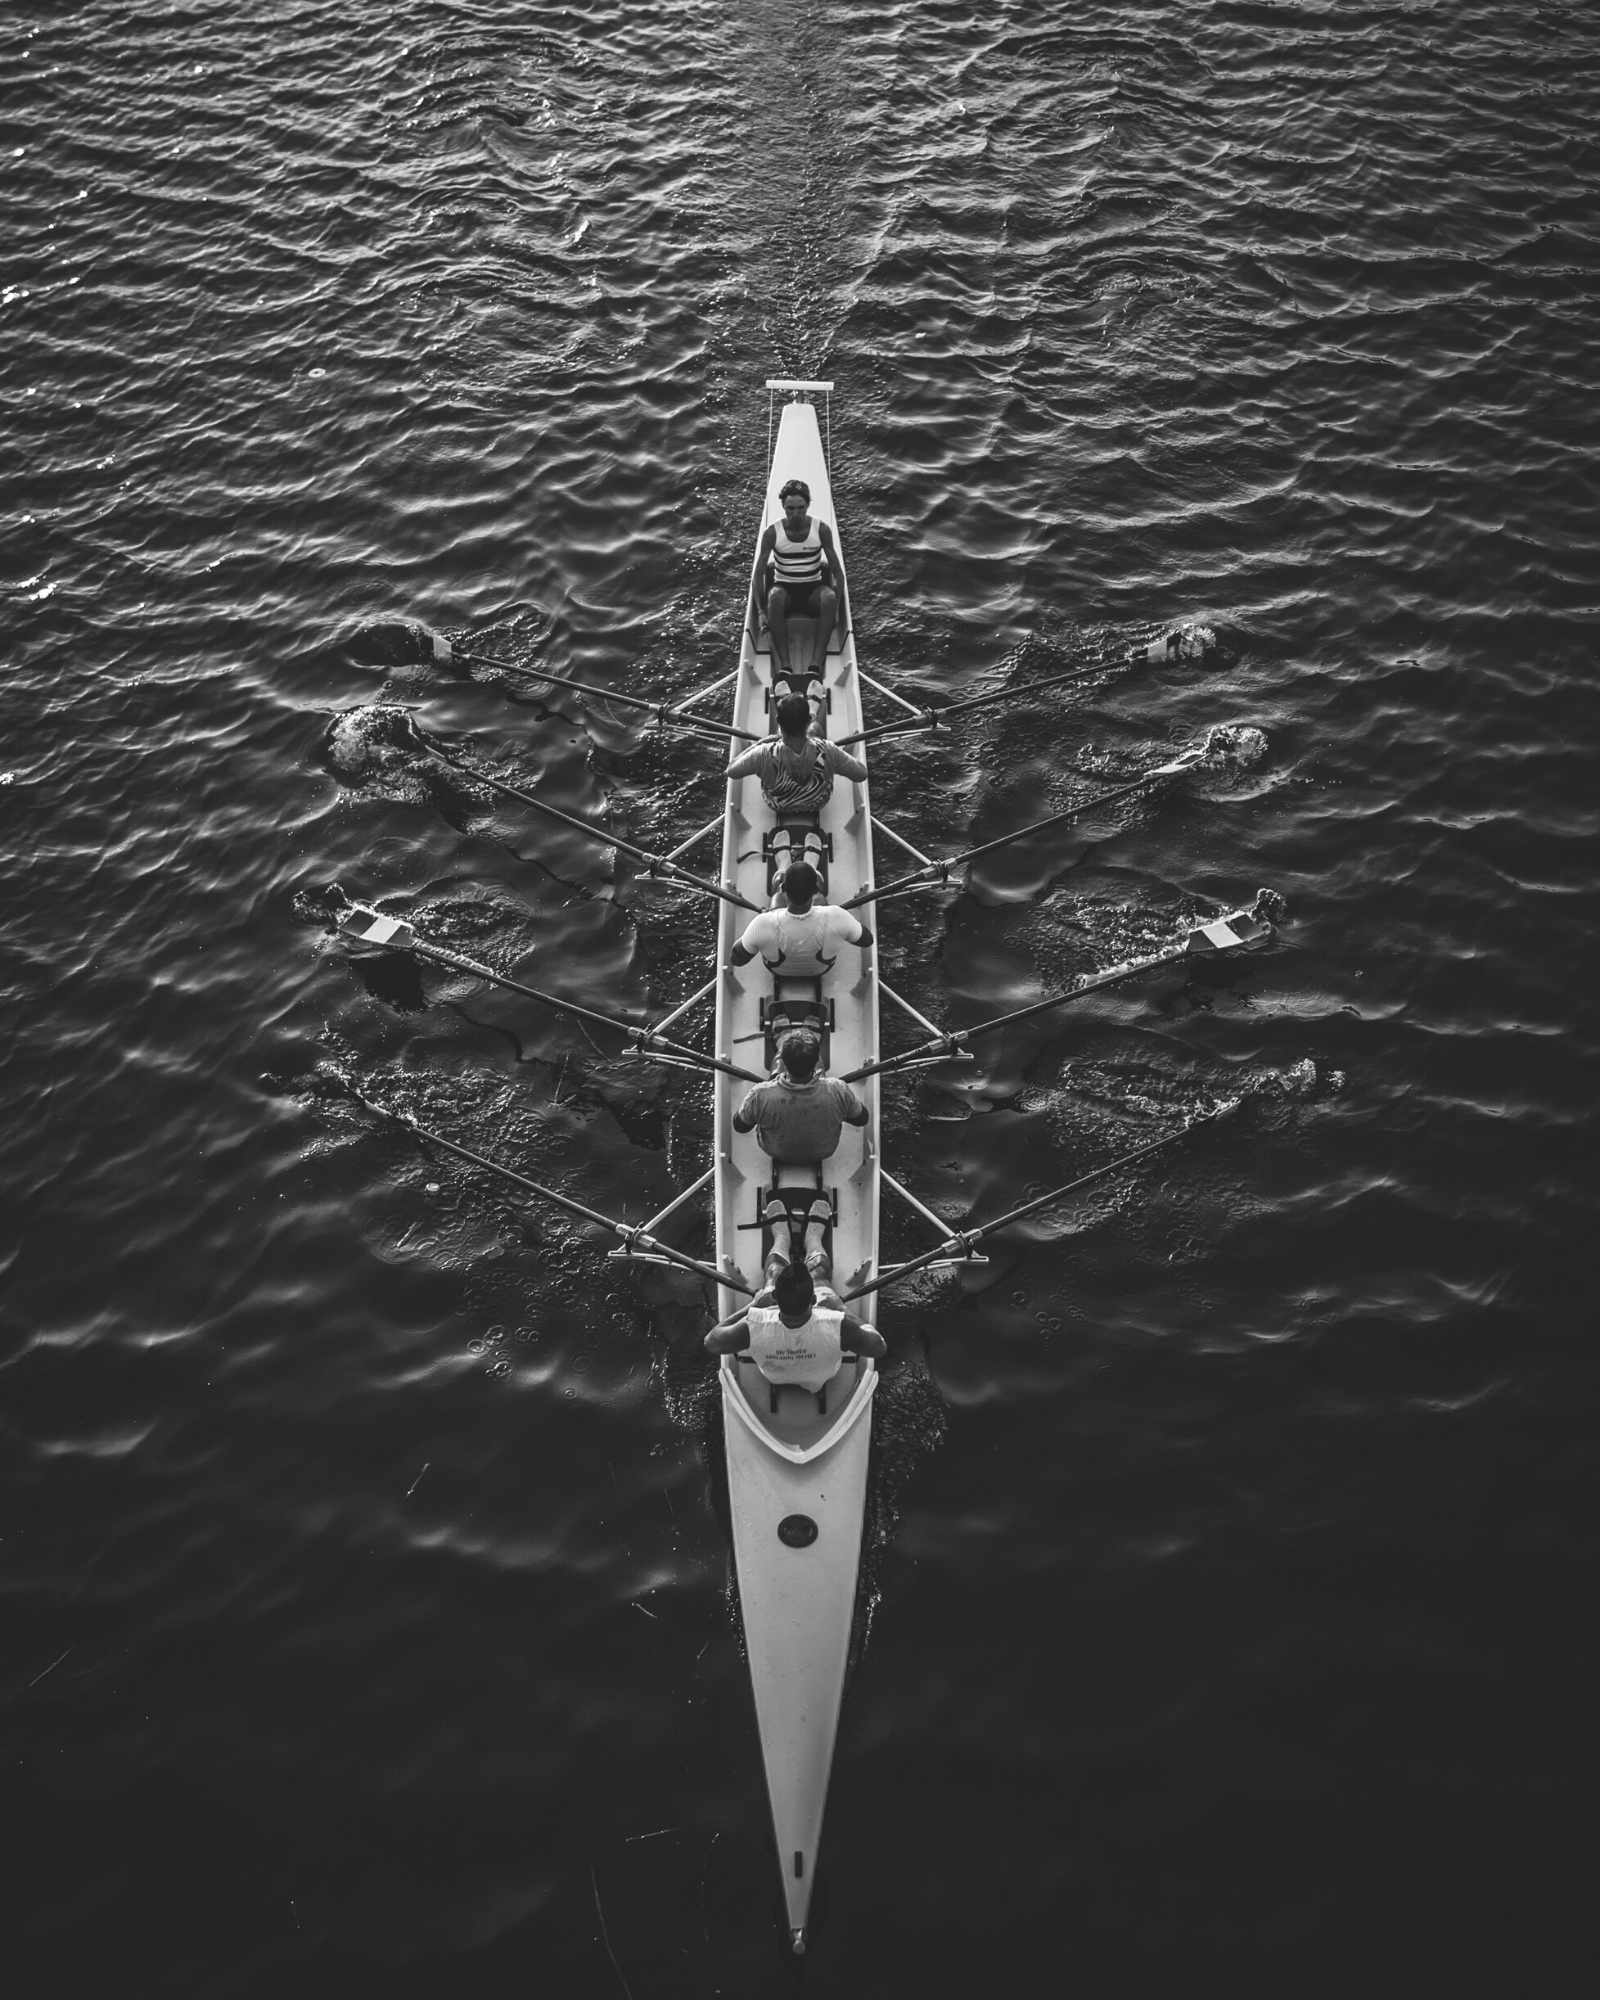 Rowing team rowing on a river